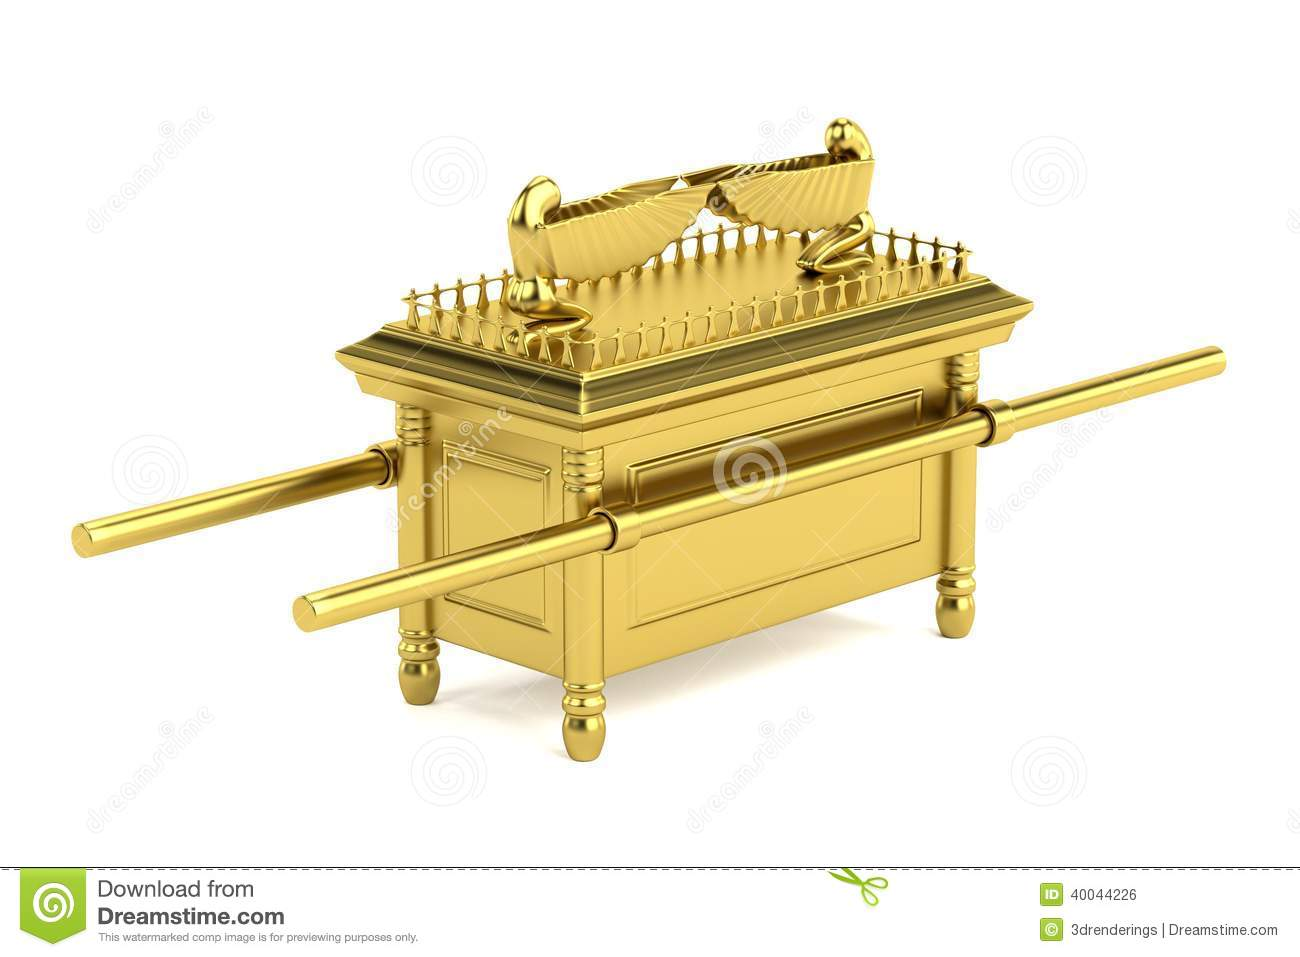 Coloring picture of the ark of covenant - Render Of Ark Of The Covenant Royalty Free Stock Image